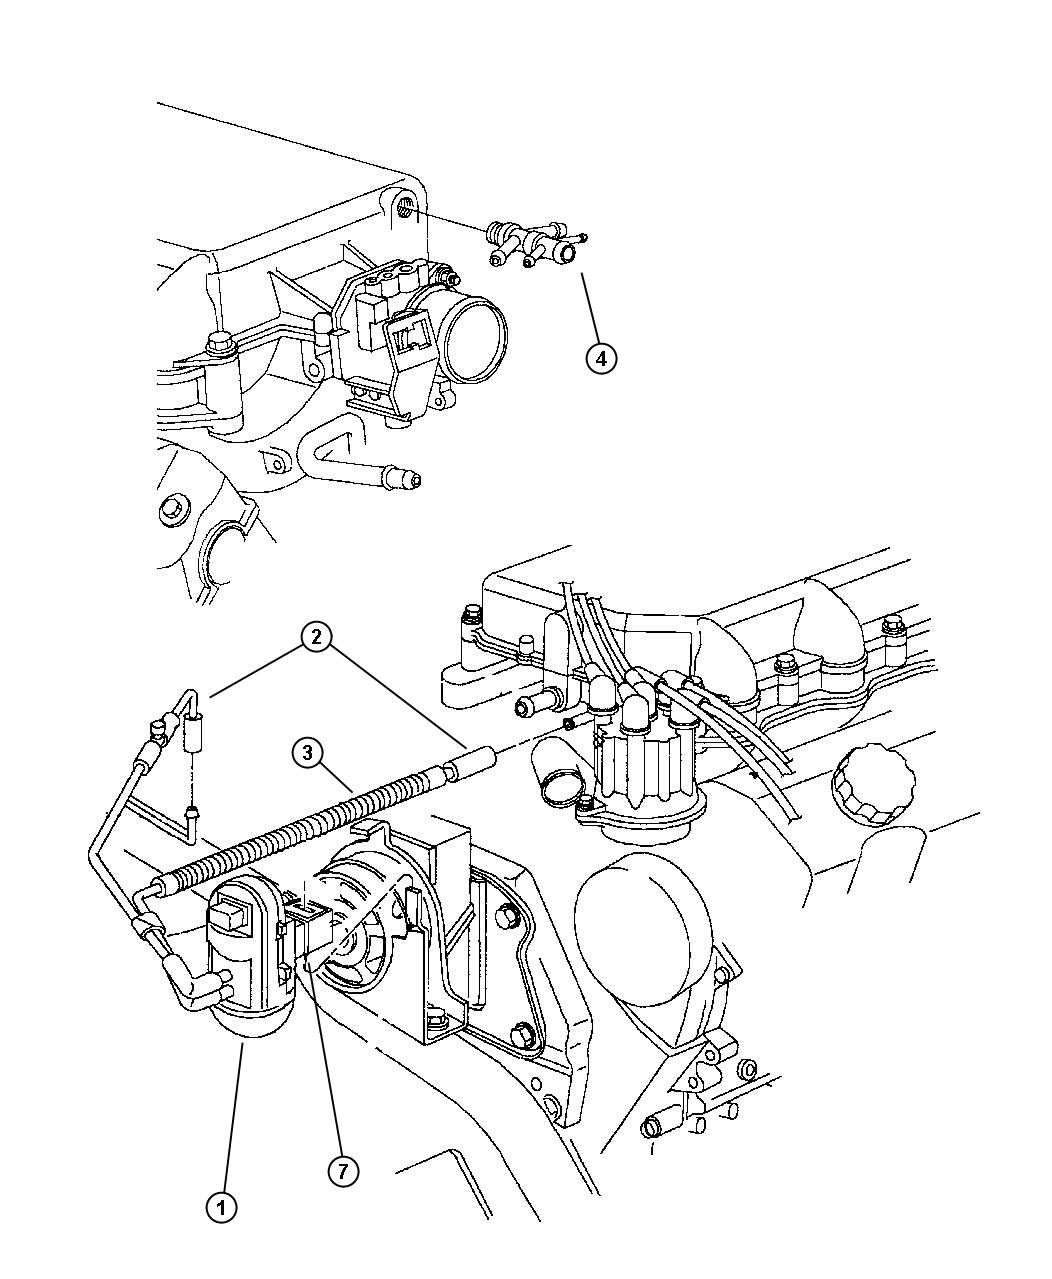 Service manual [1994 Plymouth Voyager Purge Valve Solenoid